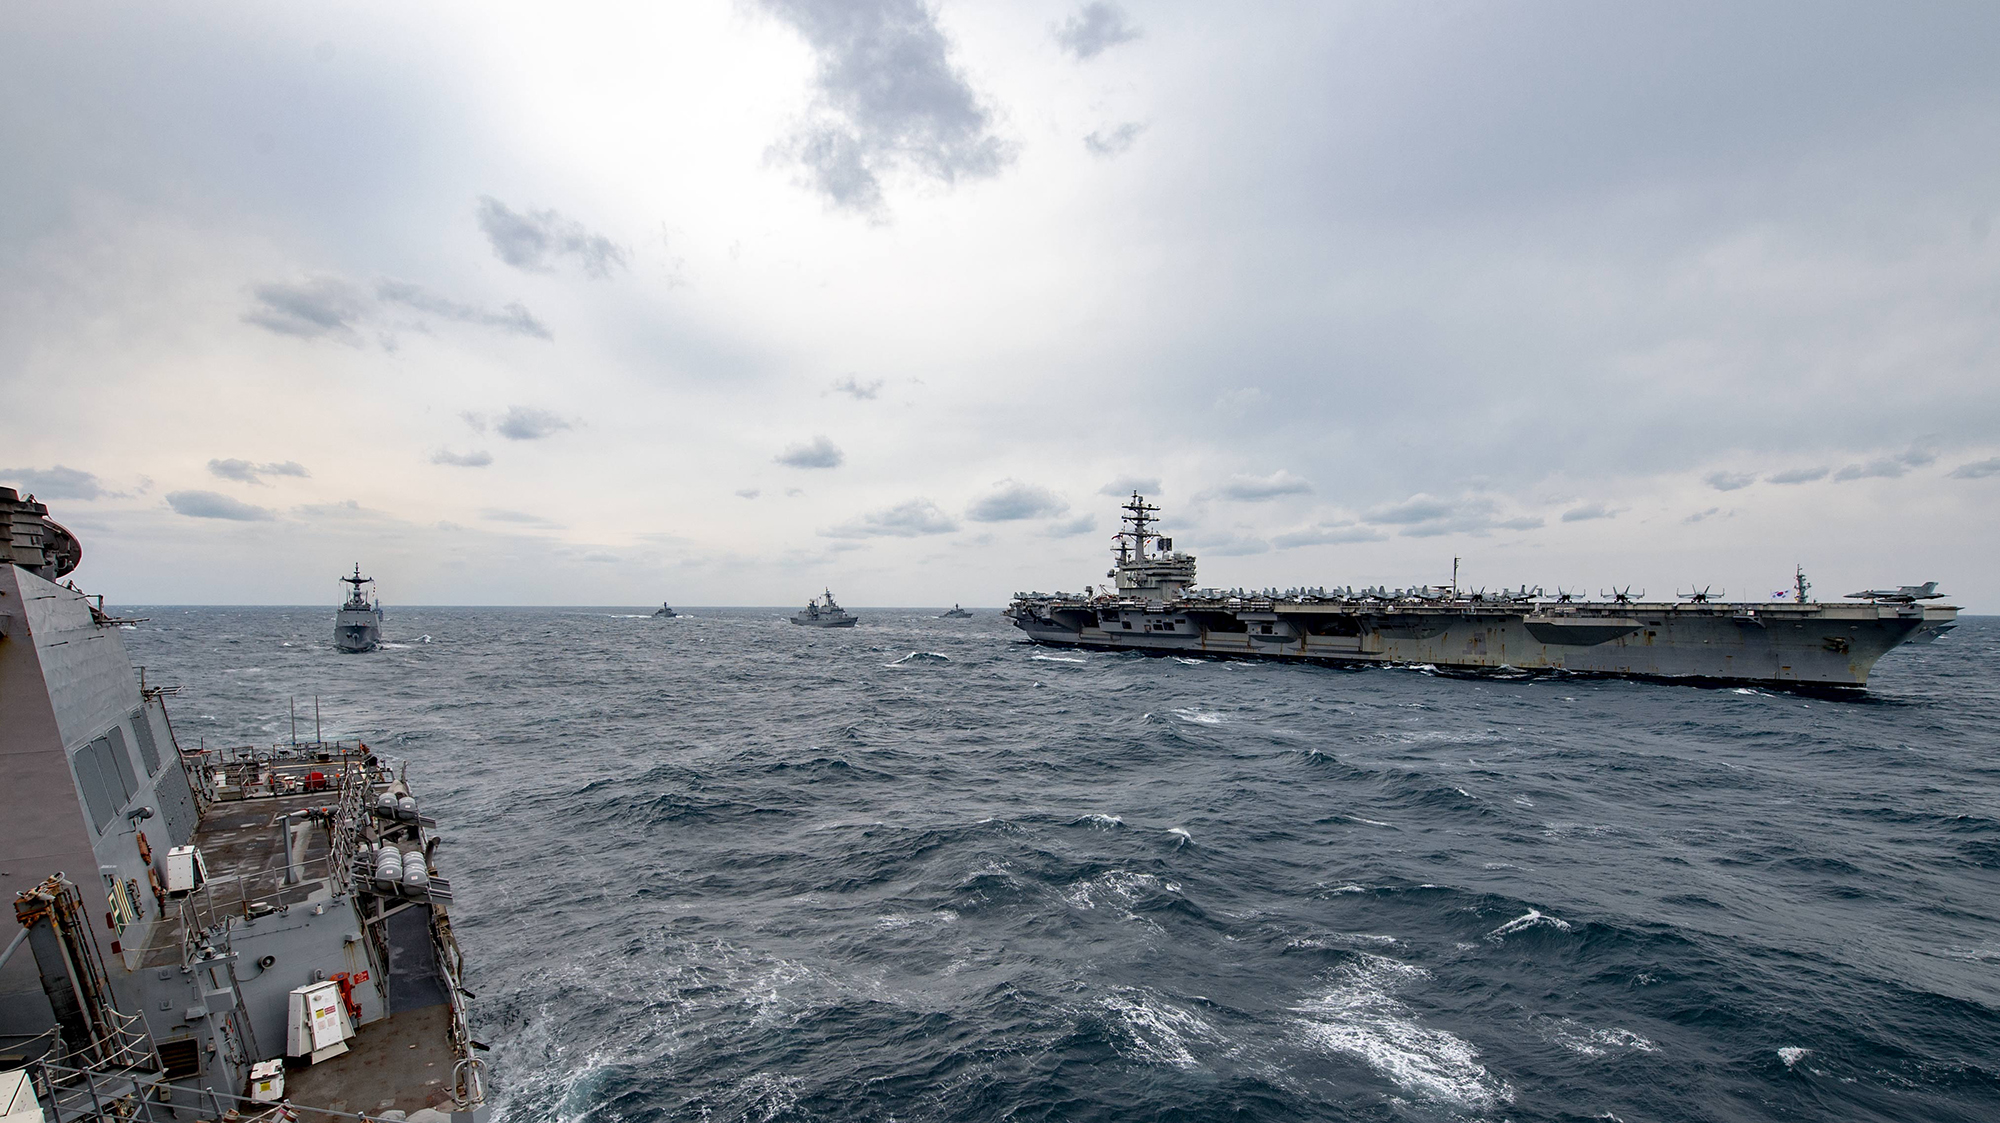 The forward-deployed Arleigh Burke-class guided-missile destroyer USS Stethem (DDG 63) joins Republic of Korea Navy ships for an exercise with the aircraft Carrier USS Ronald Reagan (CVN 76). Stethem is on patrol in the U.S. 7th Fleet area of operations in support of security and stability in the Indo-Asia Pacific region. (Specialist 2nd Class Jeremy Graham/Navy)